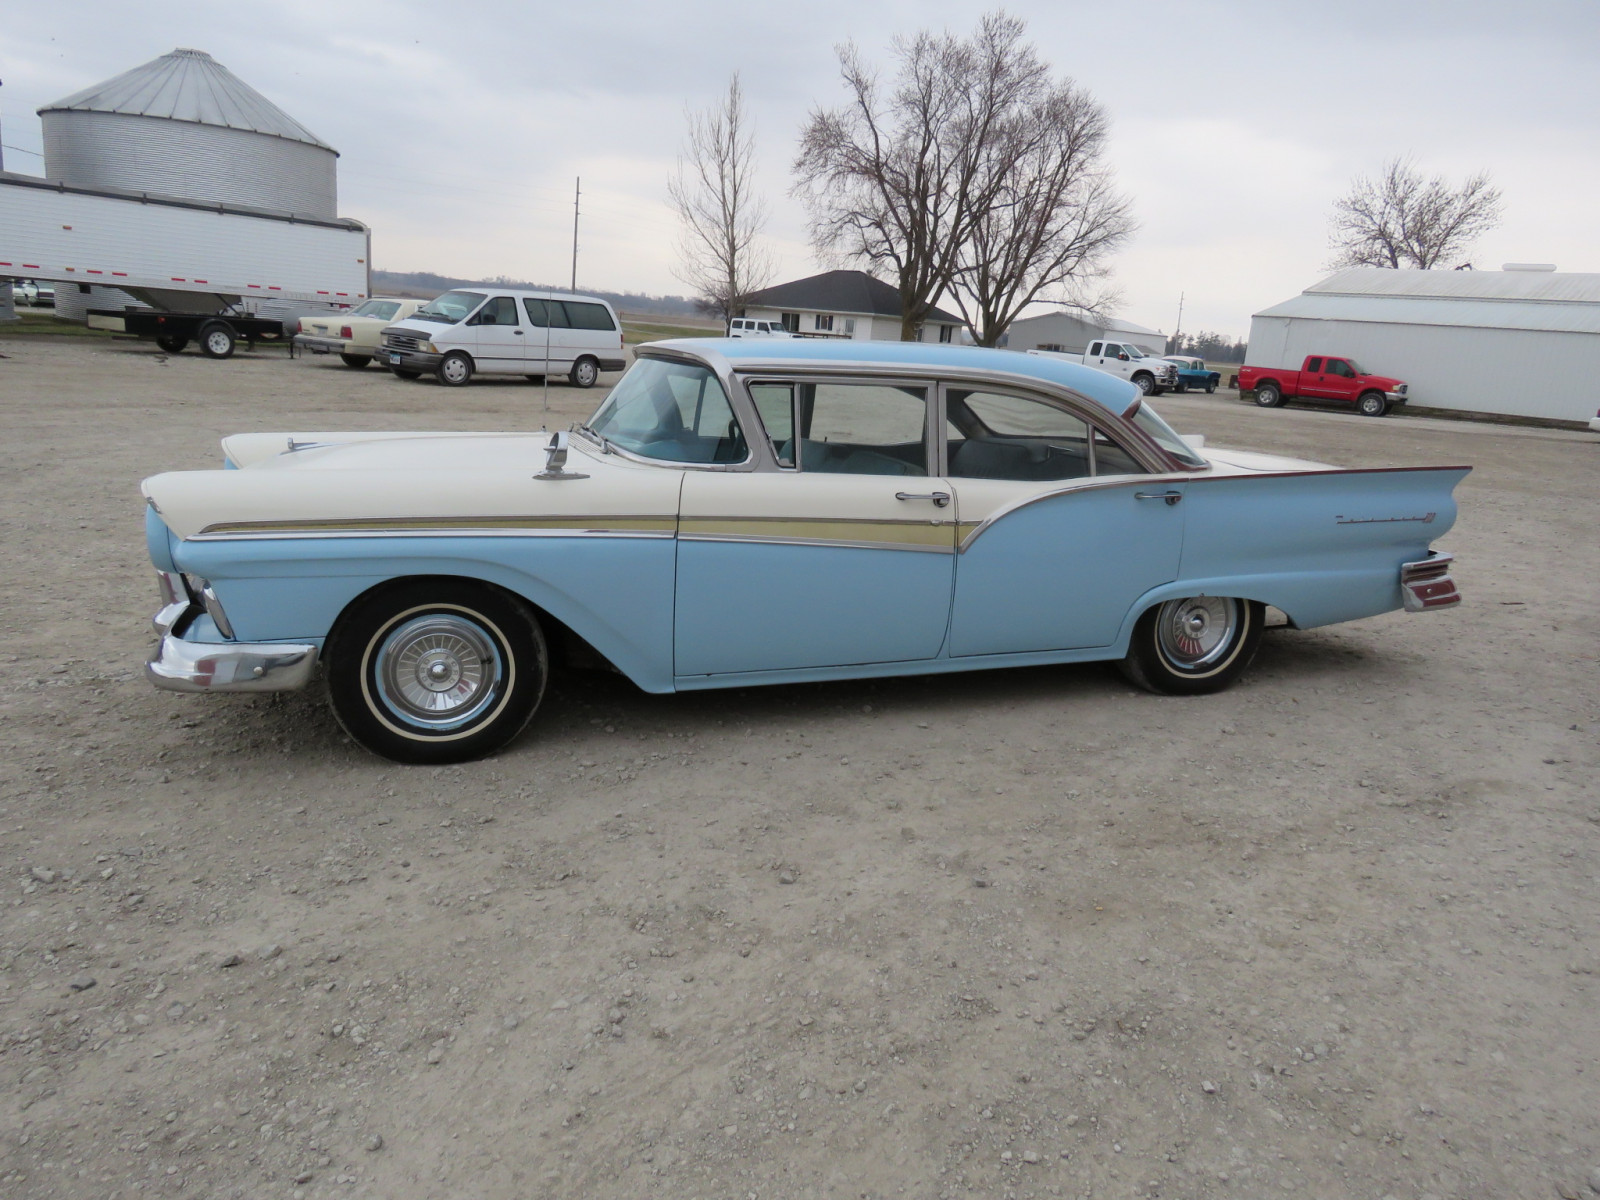 1957 Ford Fairlane 500 4dr Sedan - Image 5